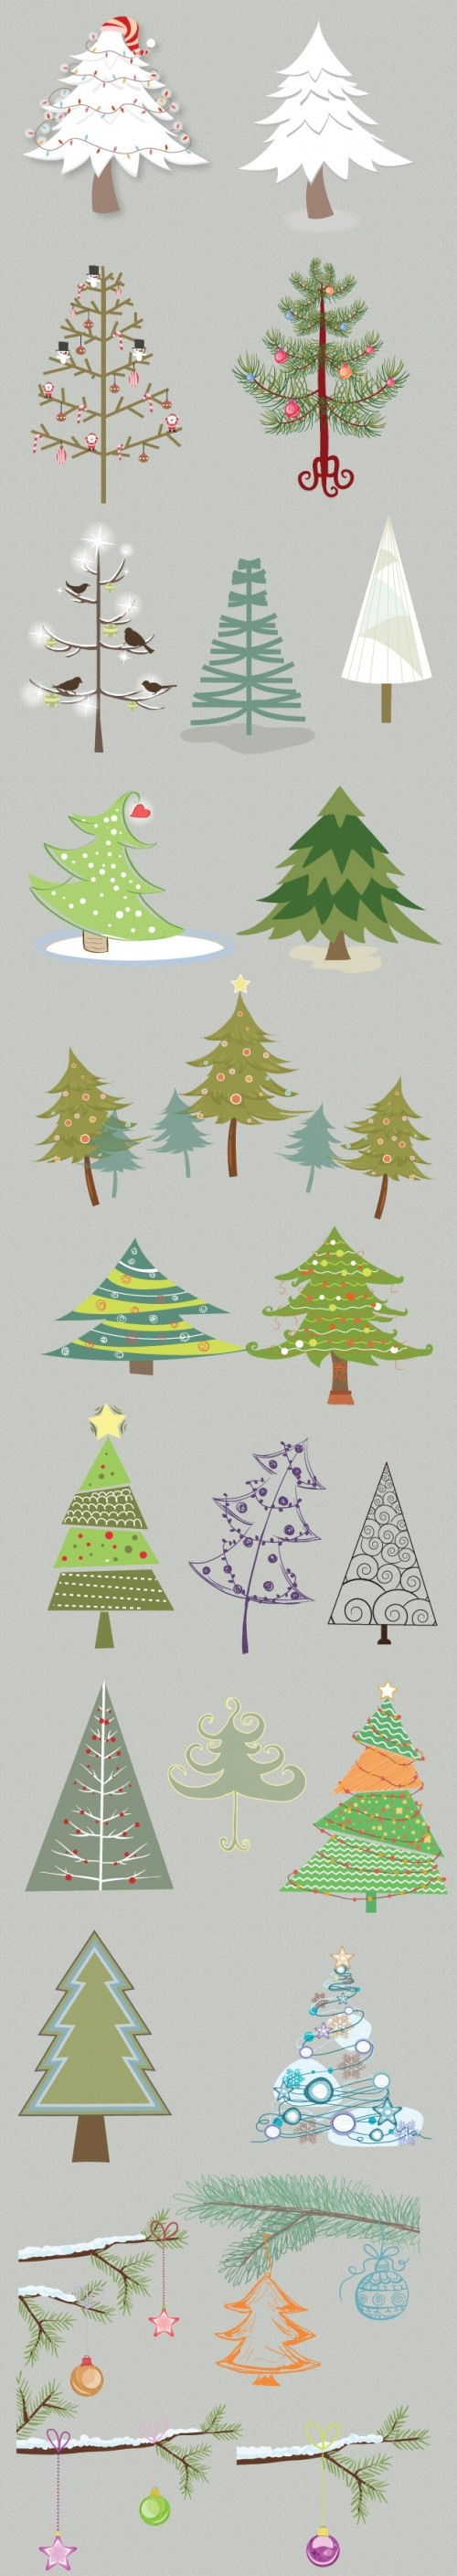 Designtnt - Christmas Trees Vector Set 1